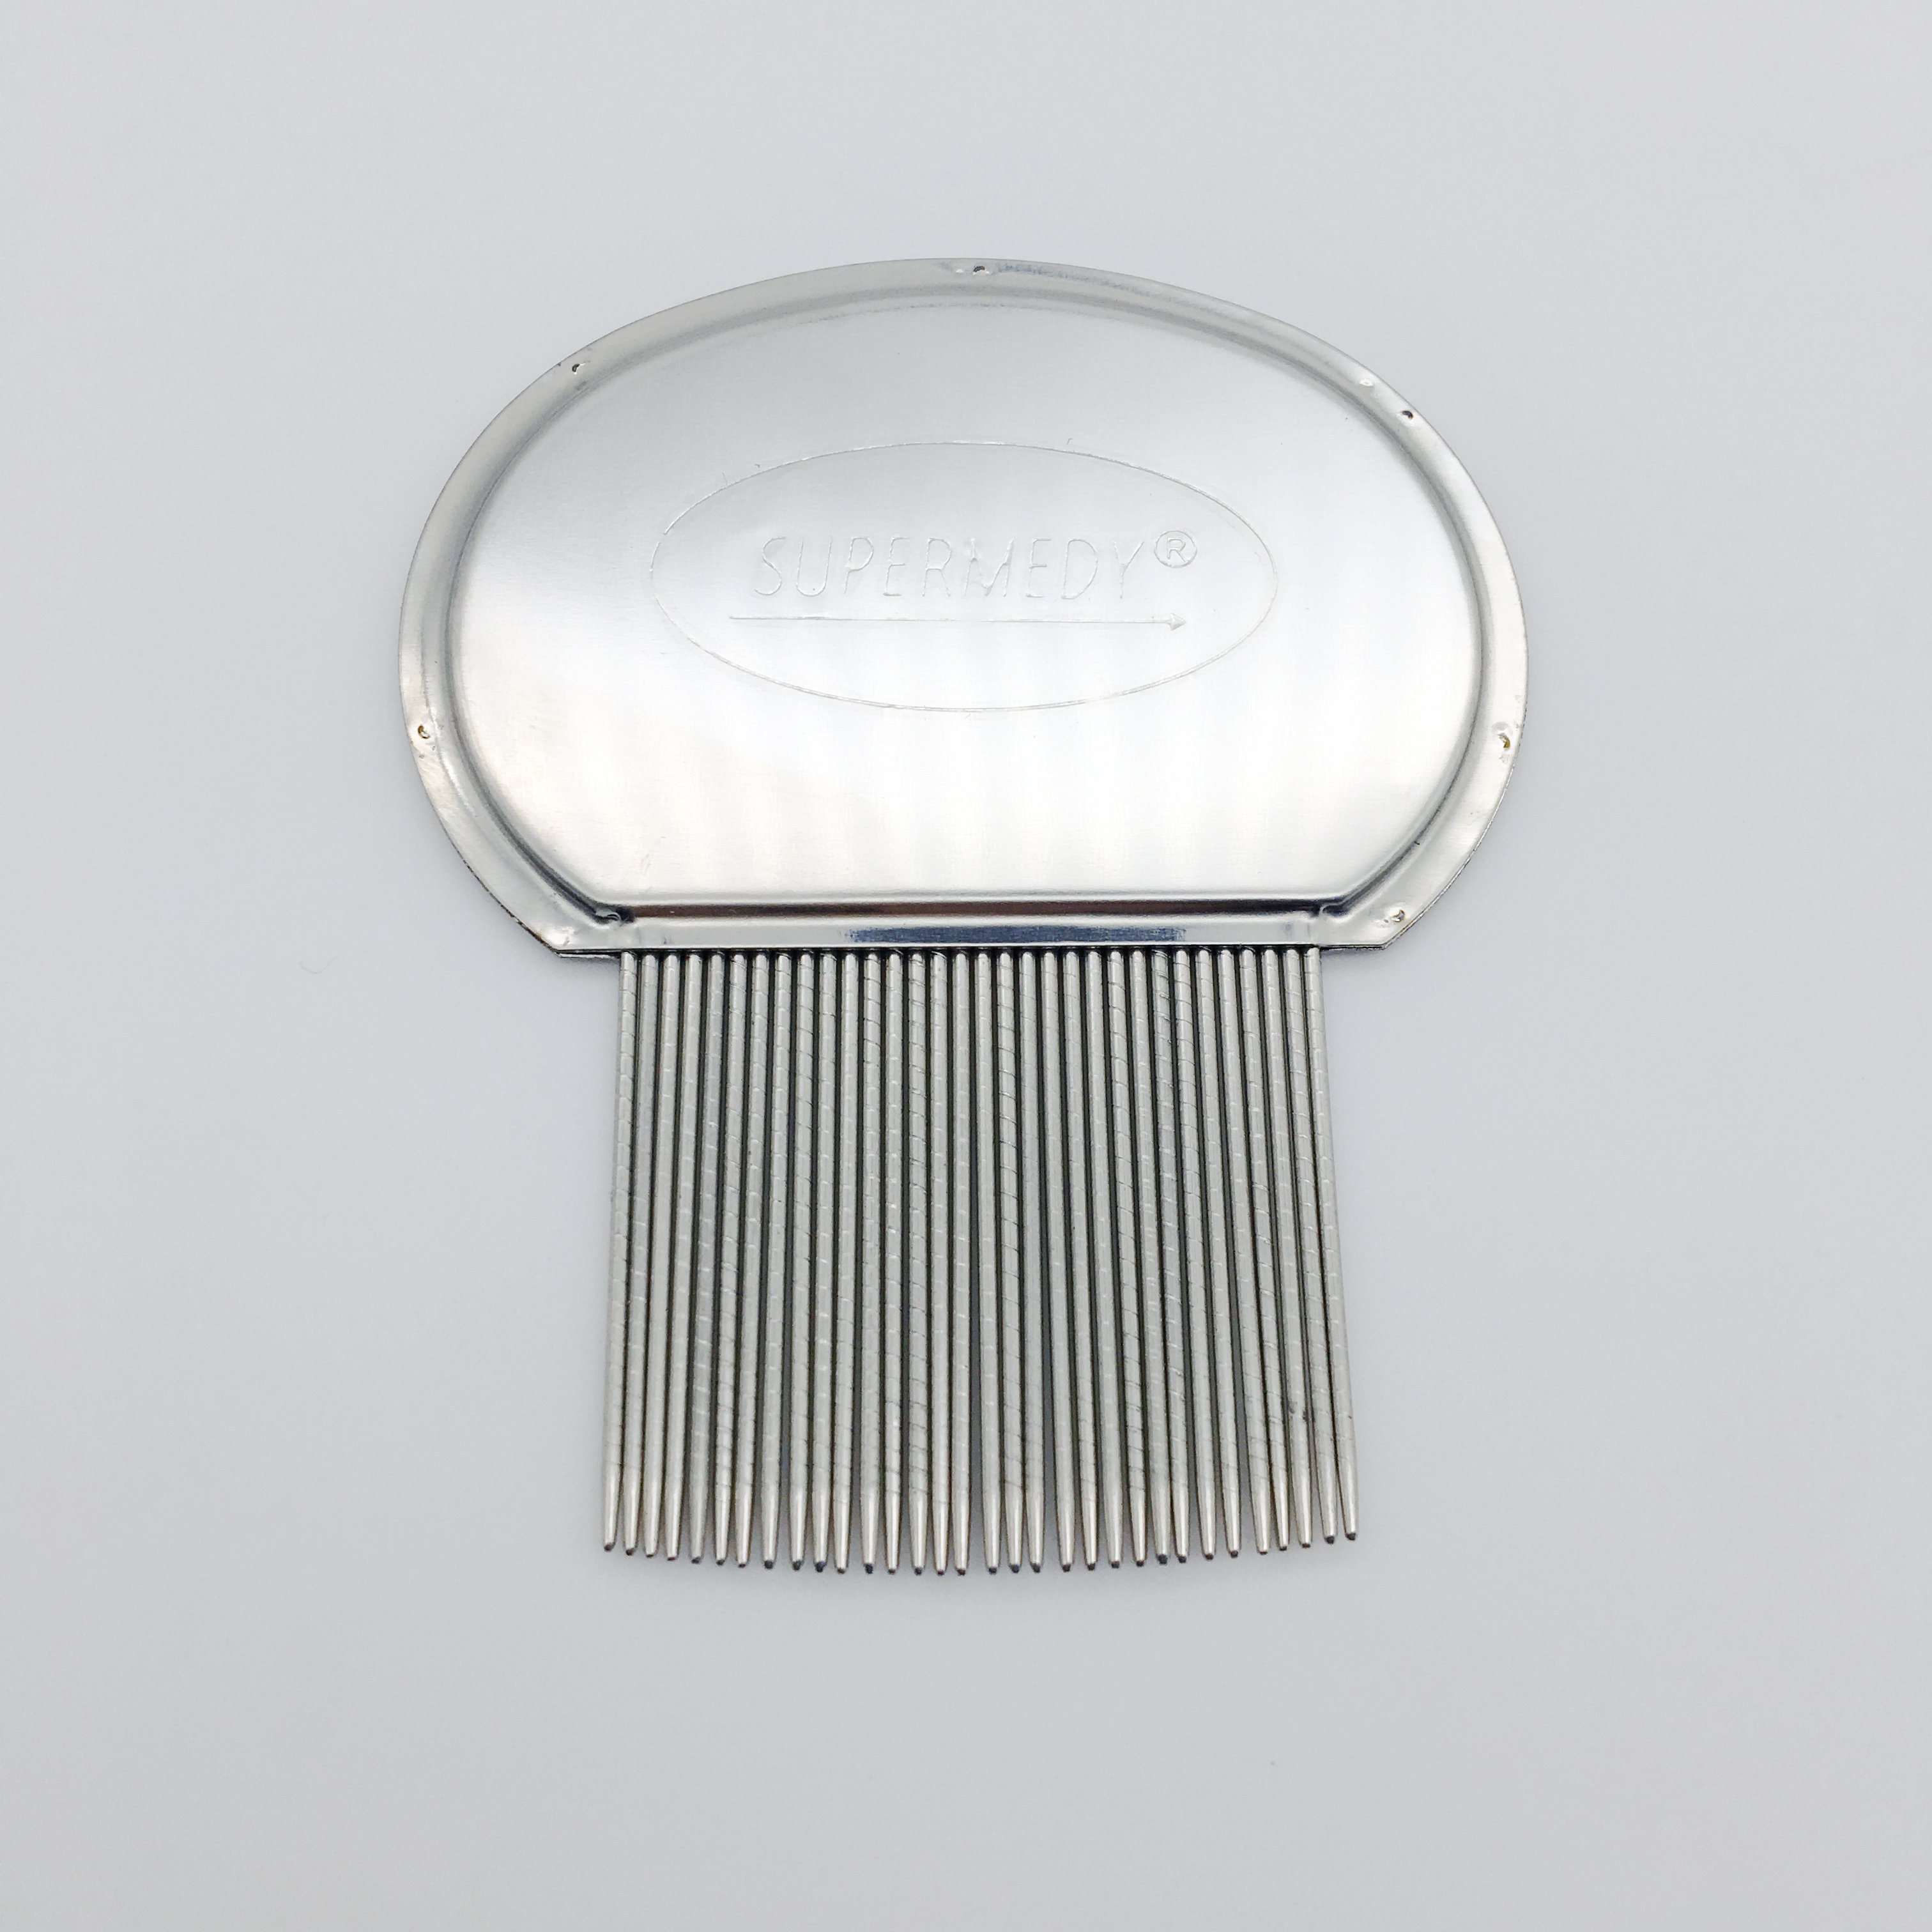 White OEM Fur Flea Tick Lice Louse Nit Remover Brush Spirraled Head <strong>Hair</strong> V-<strong>Comb</strong> With Metal Teeth For Kids What To Look For